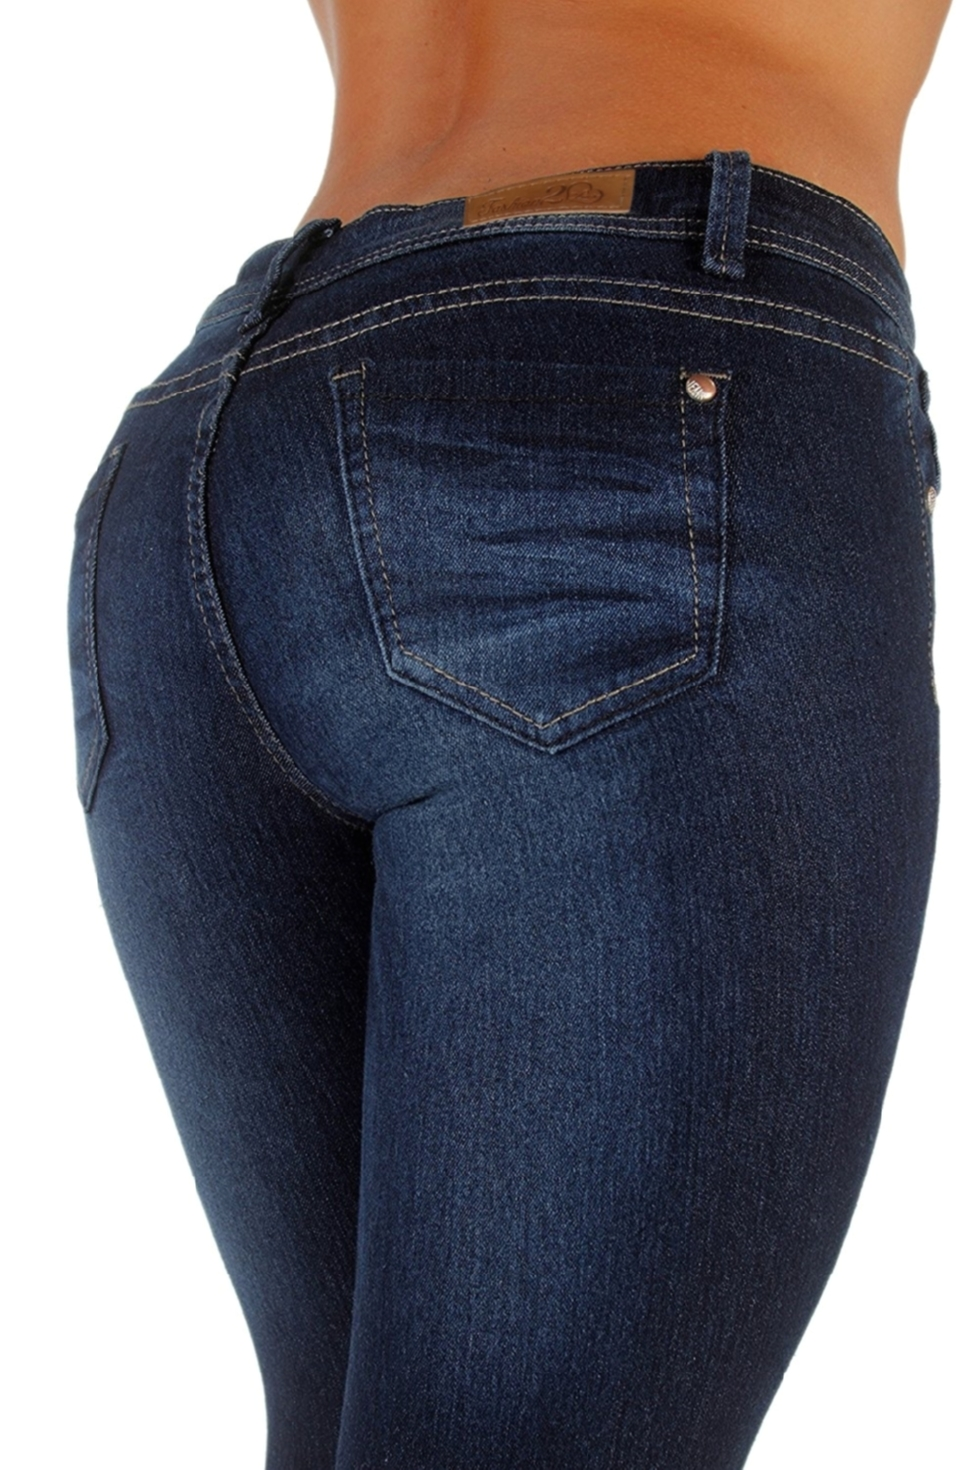 Plus-Size-Classic-5-Pockets-Washed-Skinny-Jeans thumbnail 8